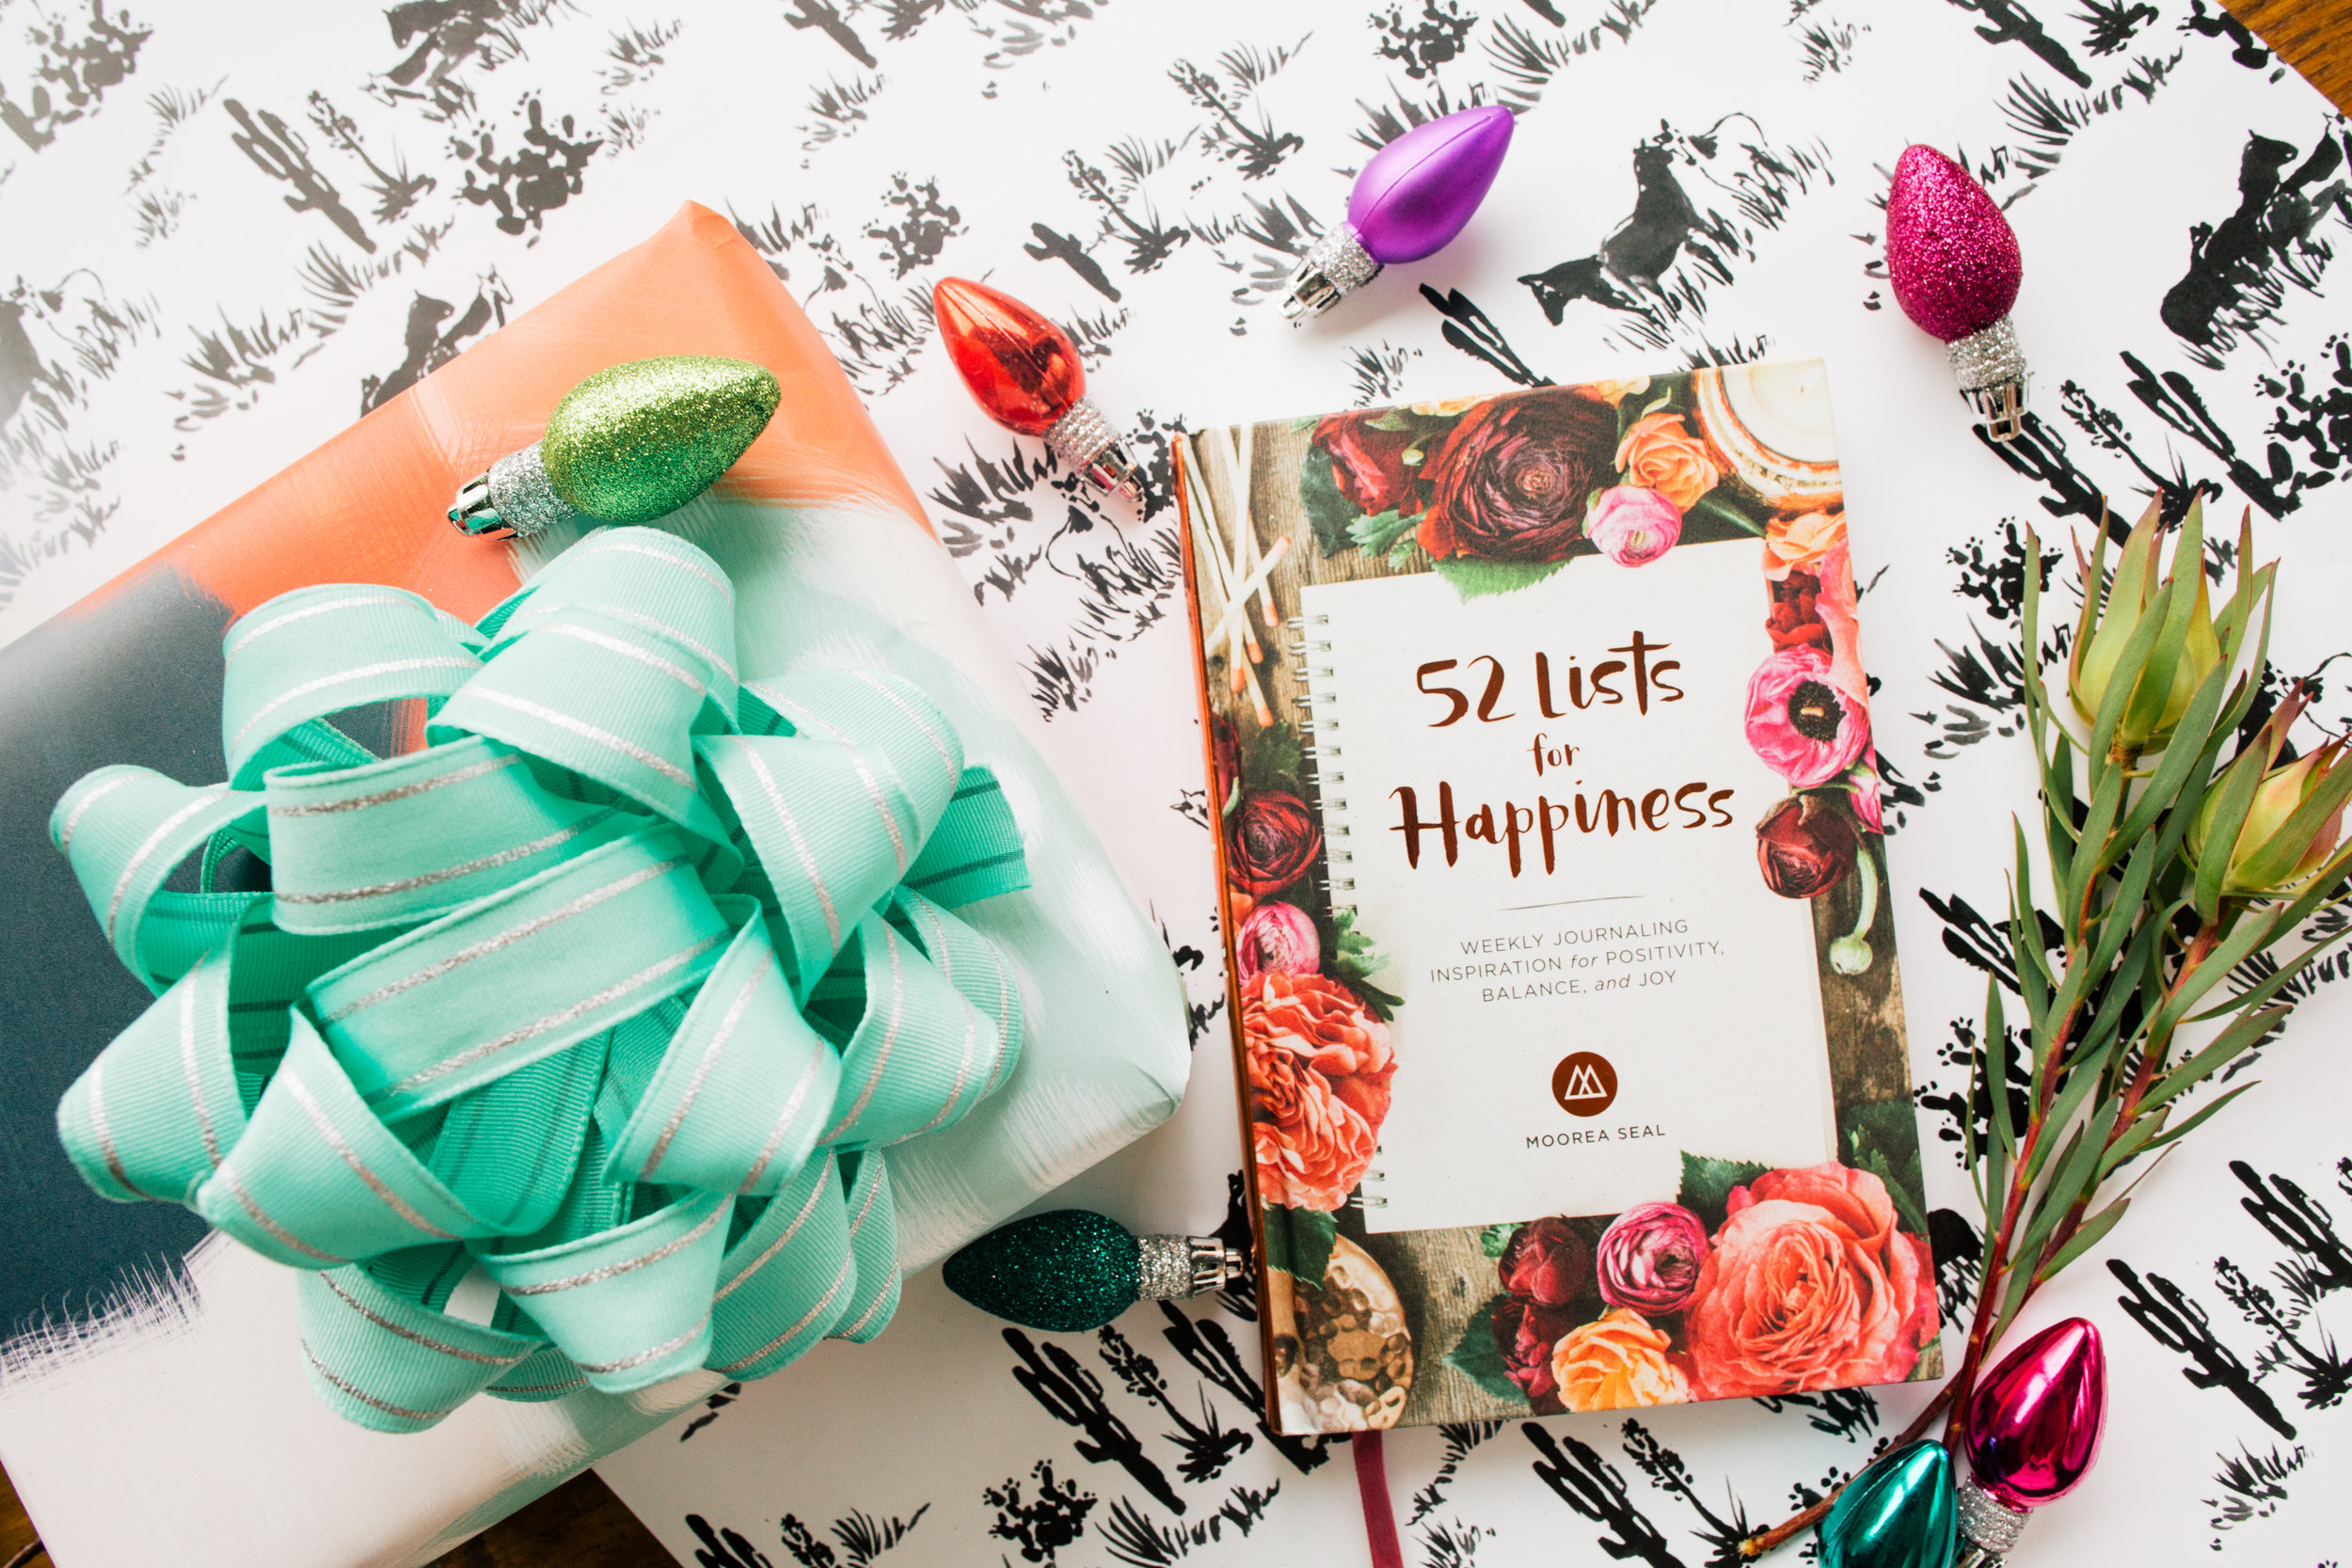 52 Lists for Happiness by Moorea Seal!